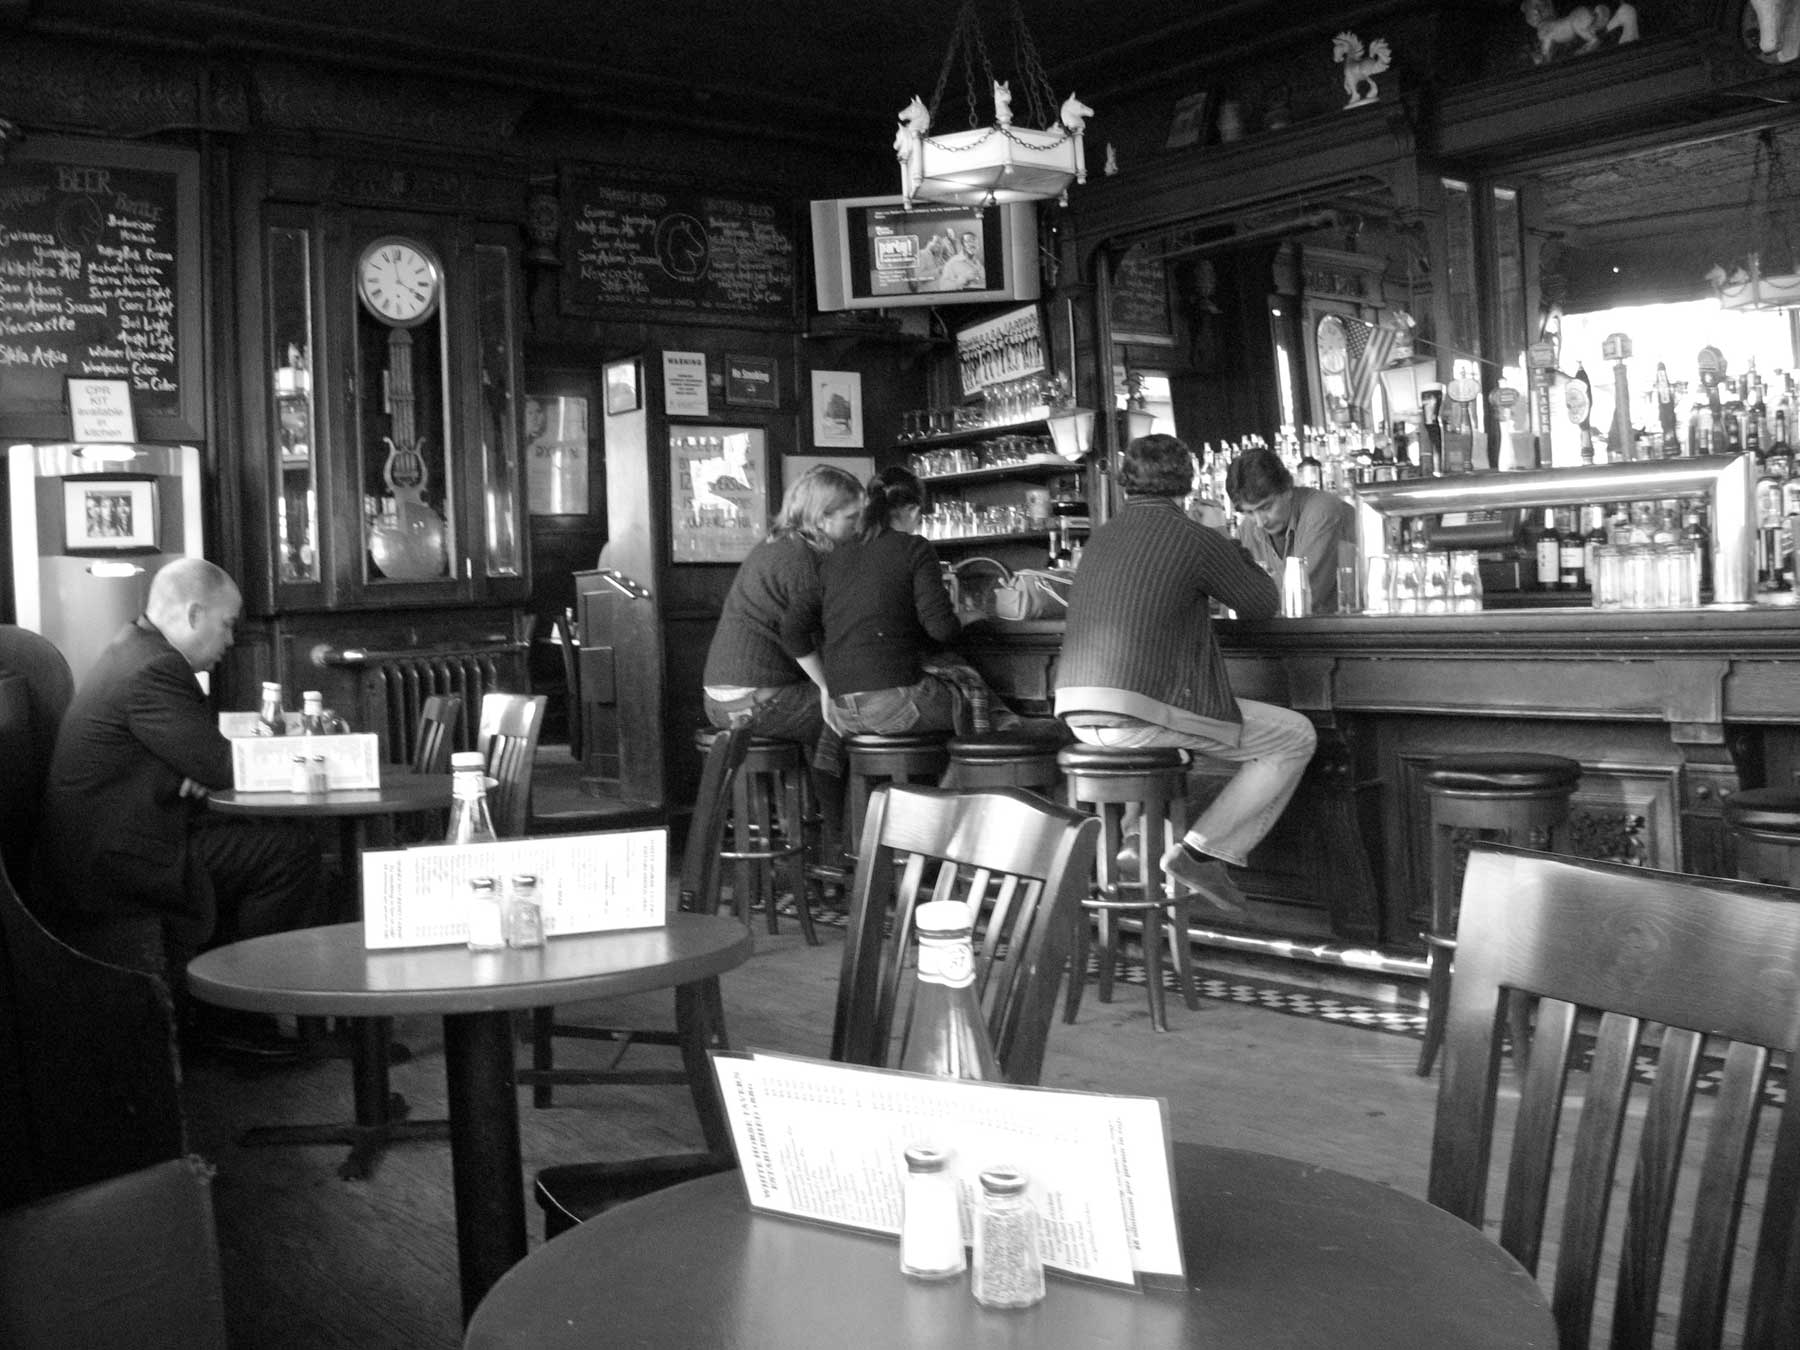 Interior of the famed White Horse Tavern in January 2007